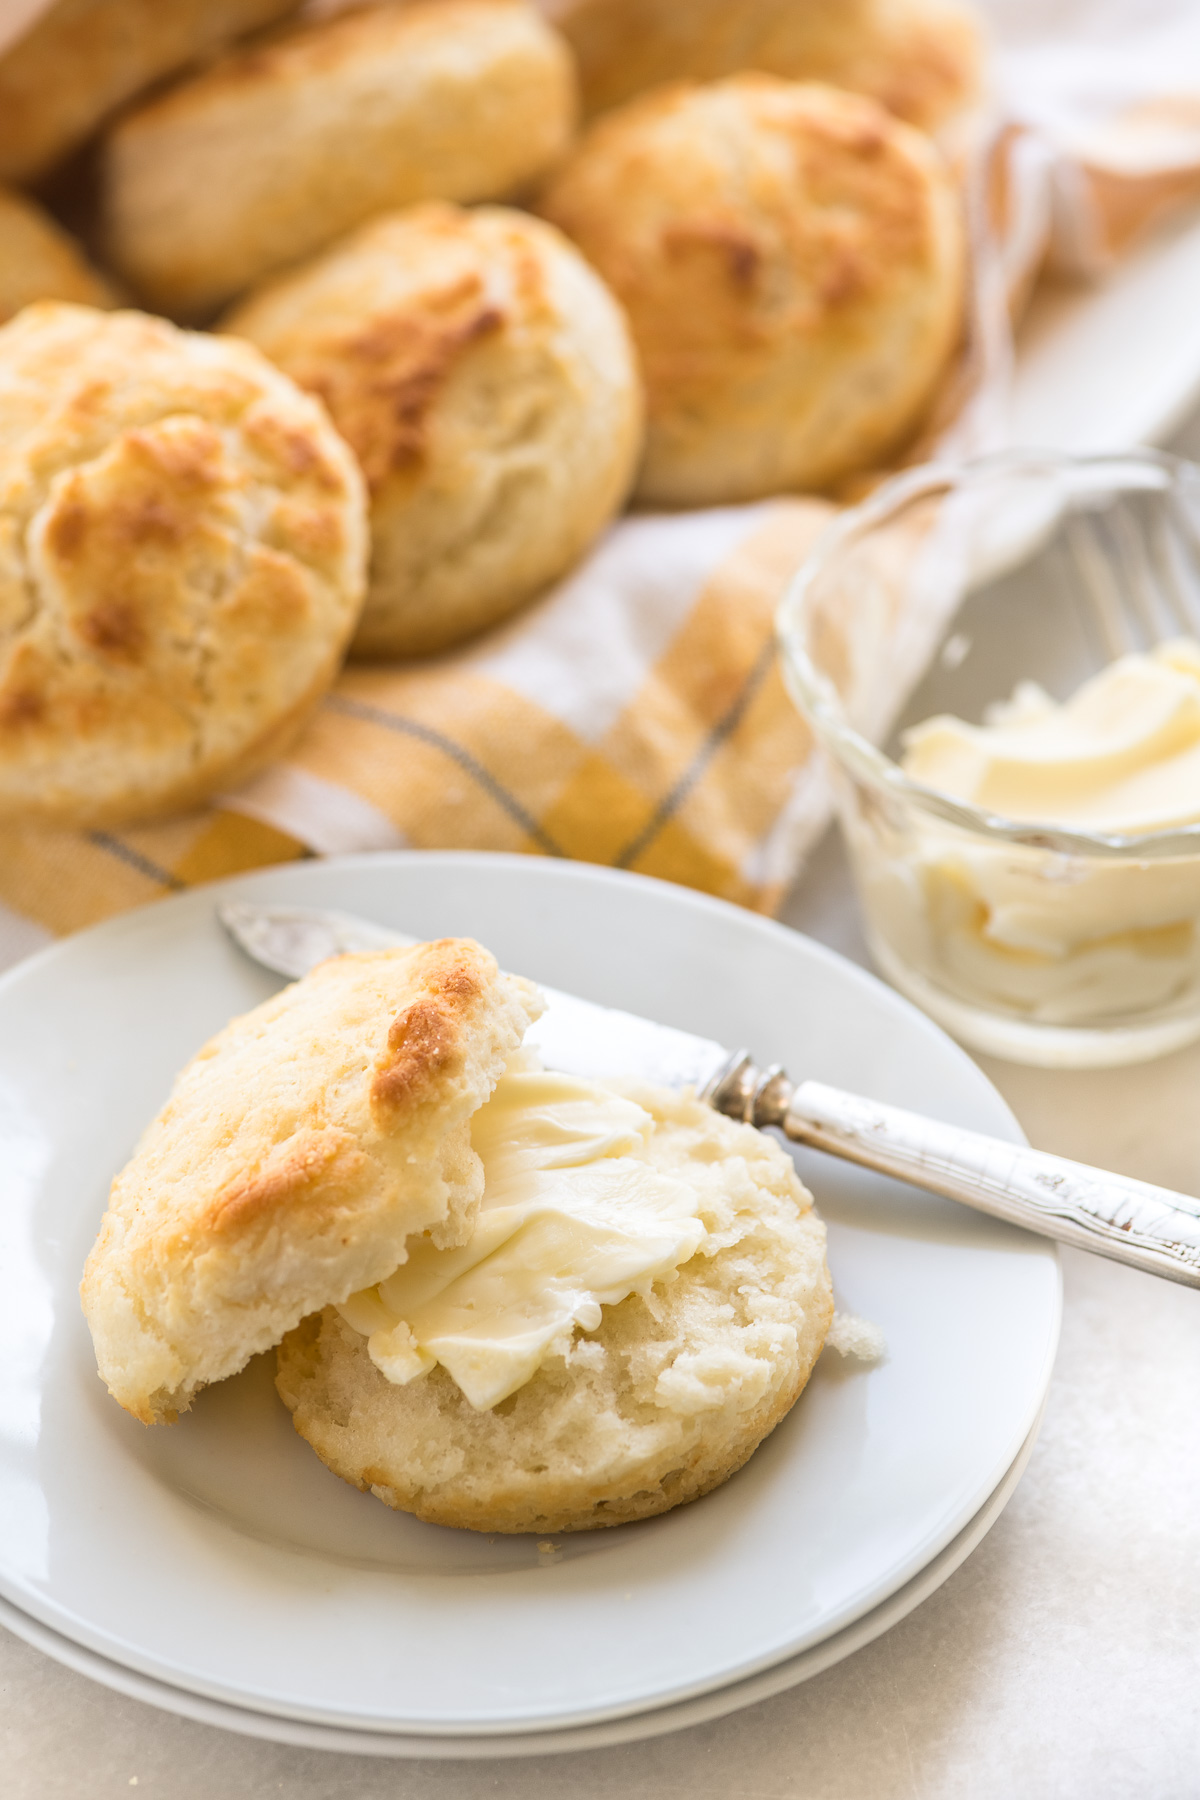 A plate of biscuits with butter